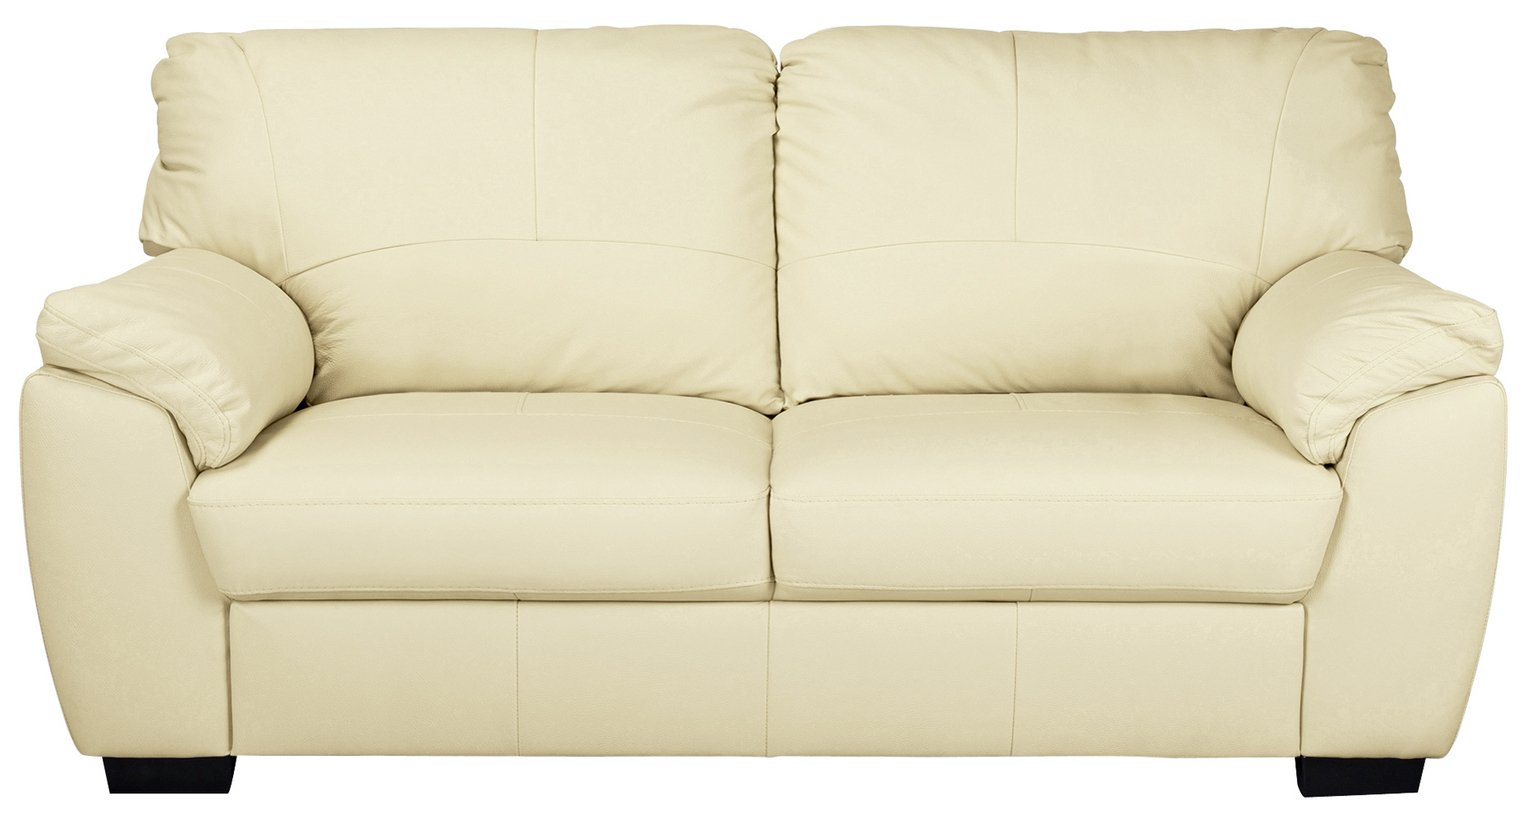 Argos Home Milano 3 Seater Leather Sofa - Ivory